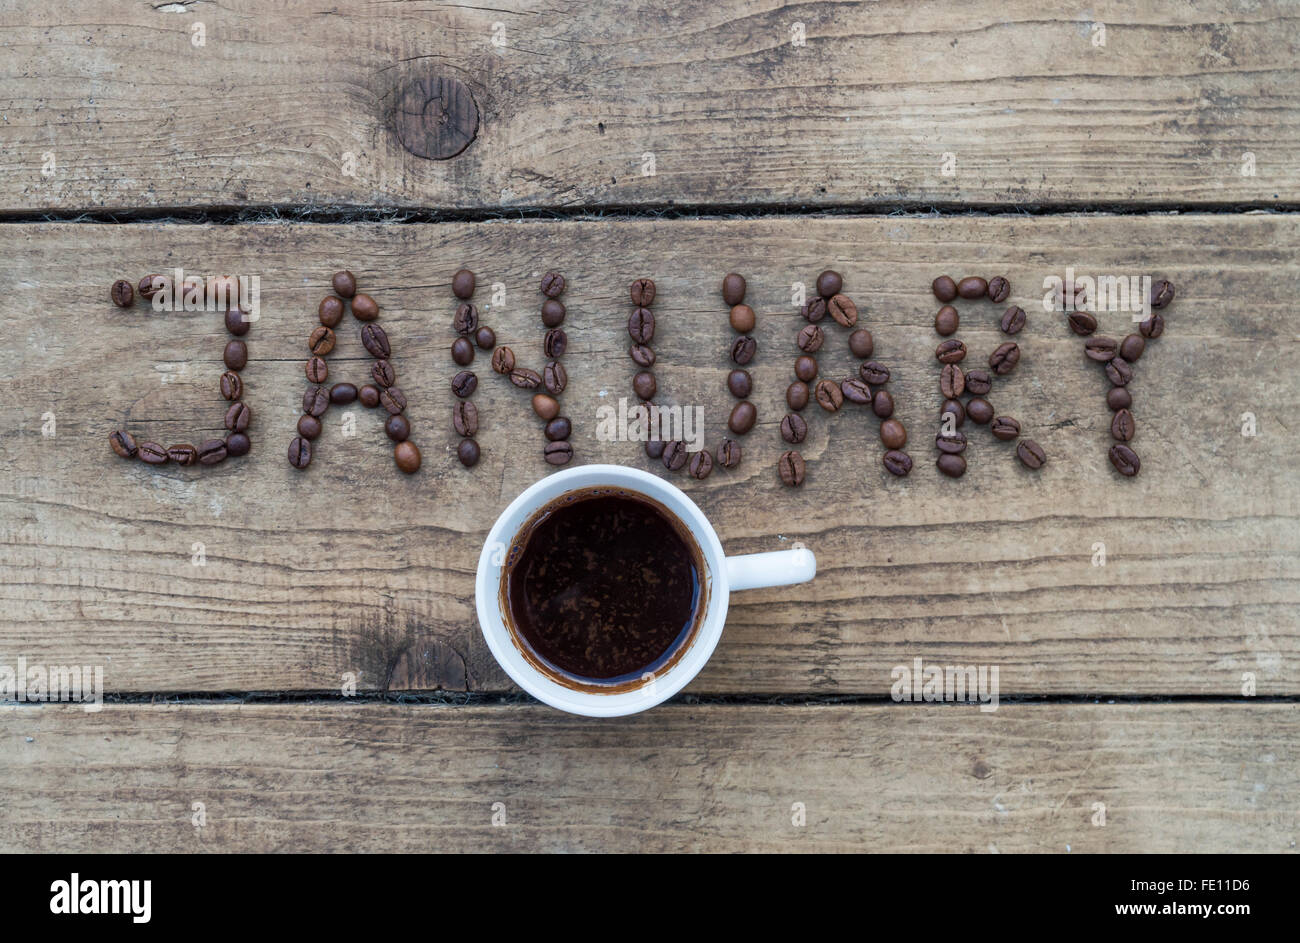 Cup of coffee on wooden background and January coffee beans Stock Photo